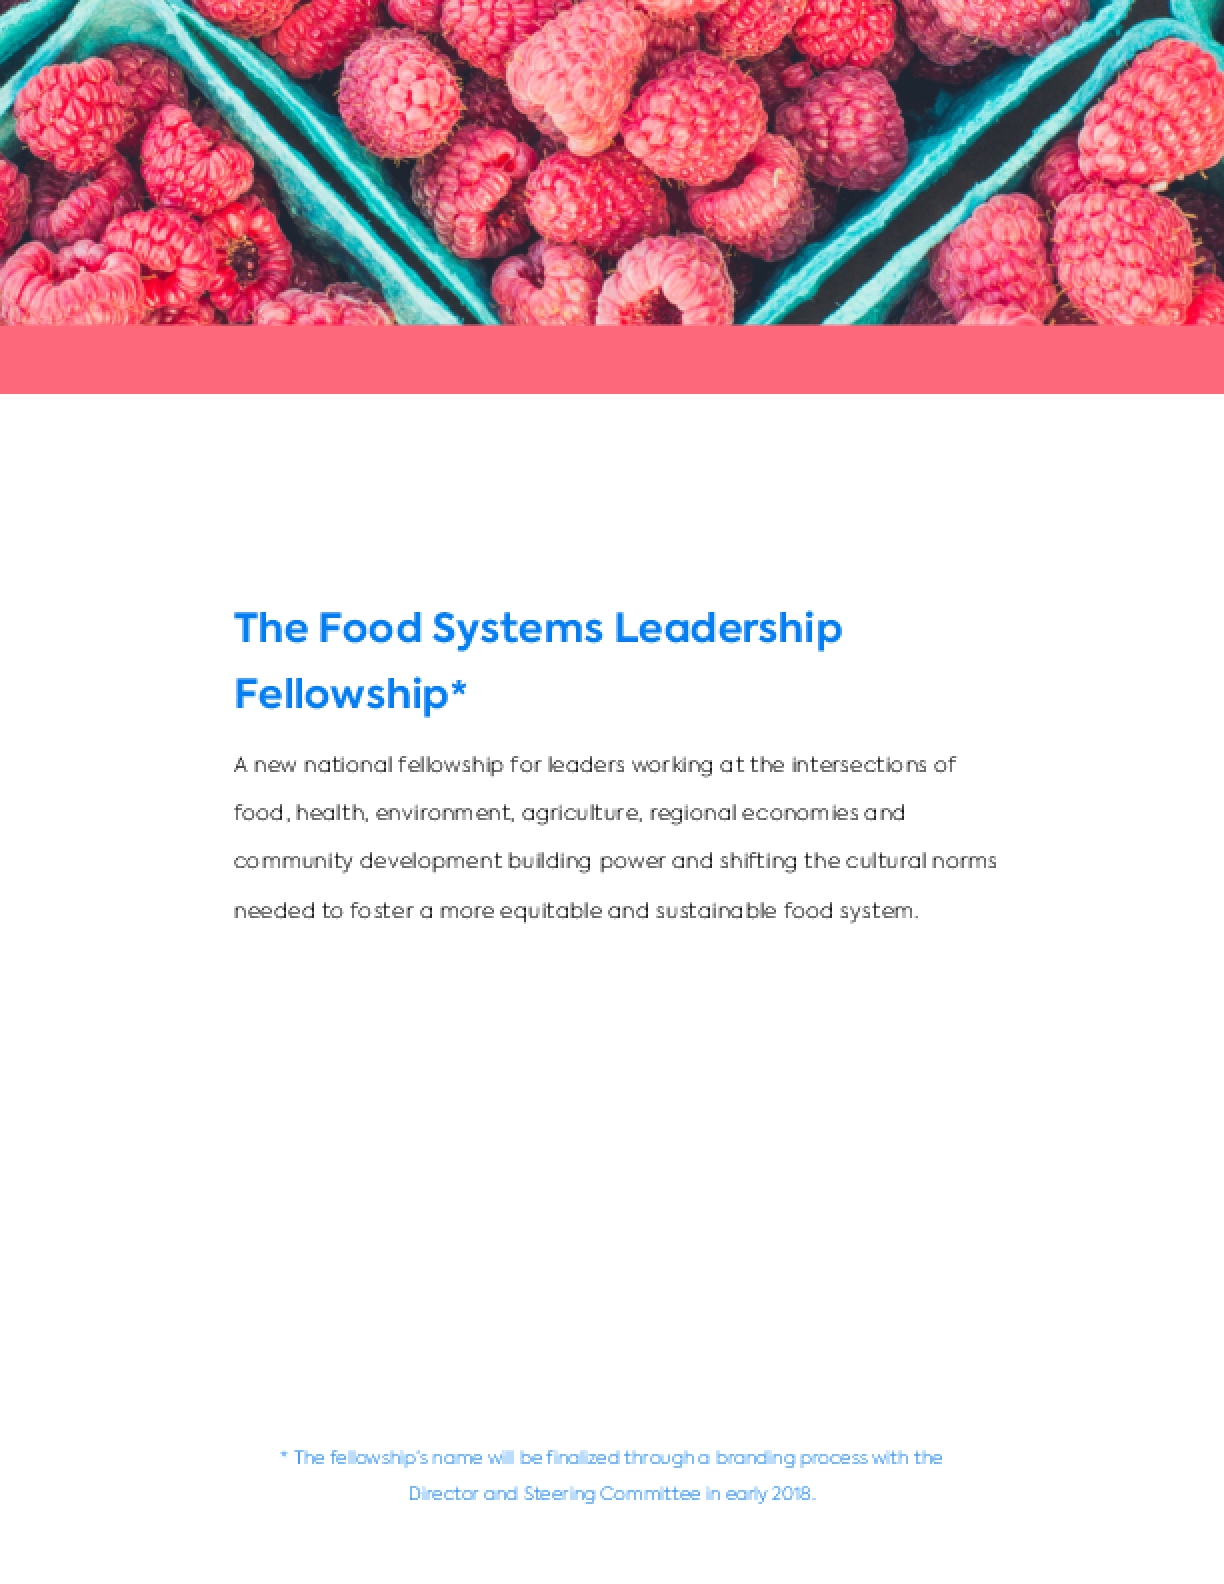 A New National Fellowship for Food Systems Leaders